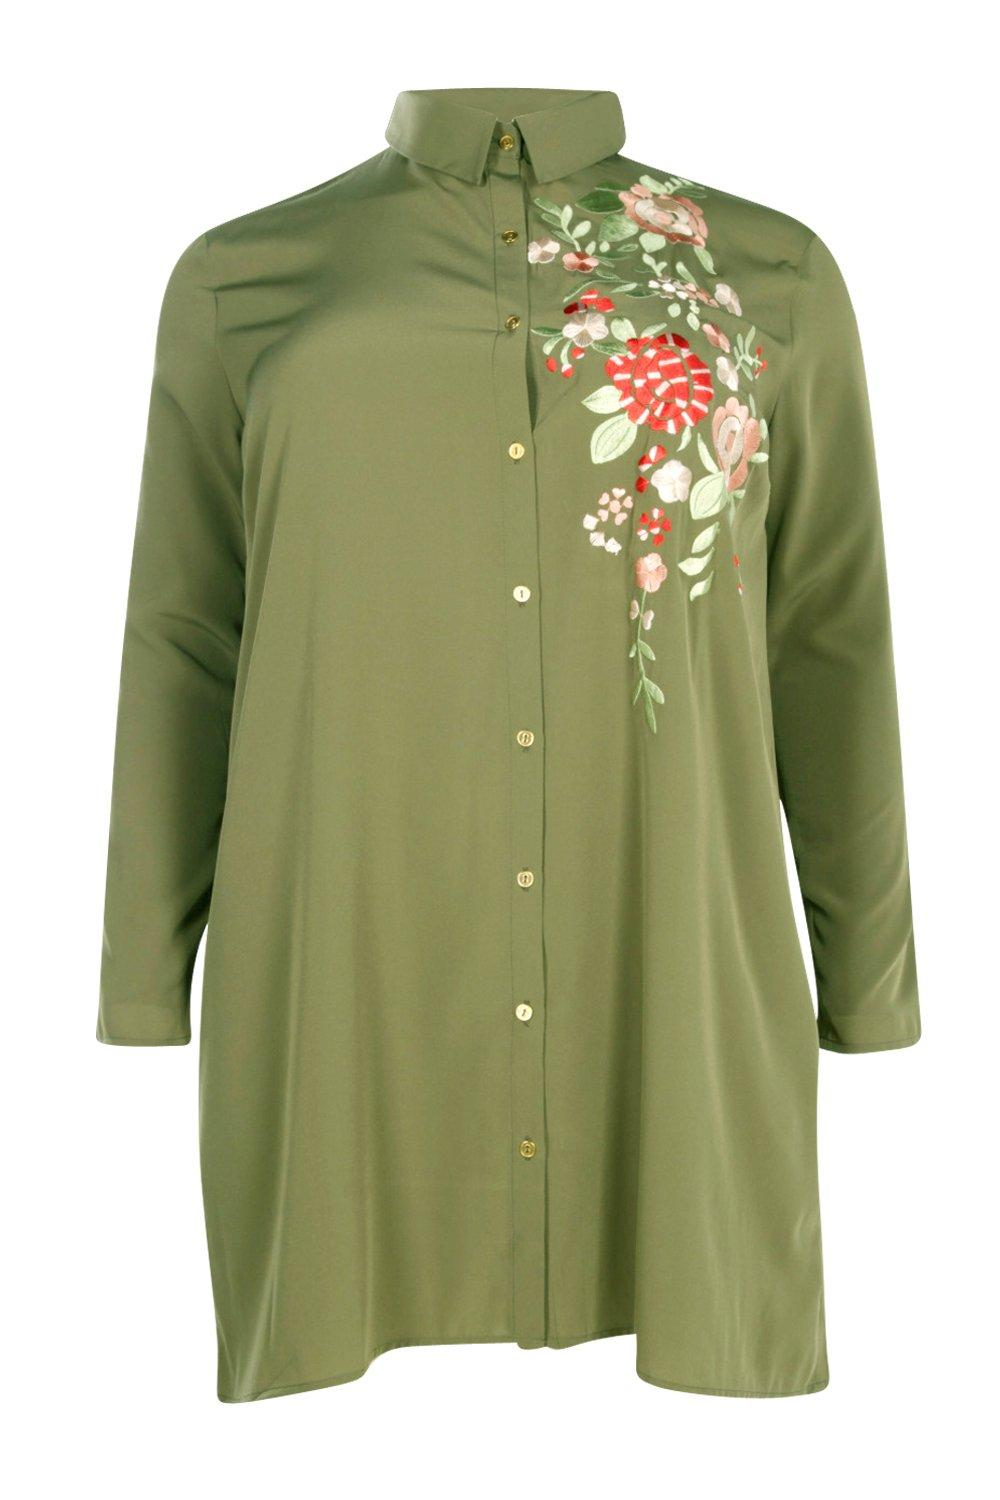 Boohoo womens plus carey embroidered shirt dress ebay